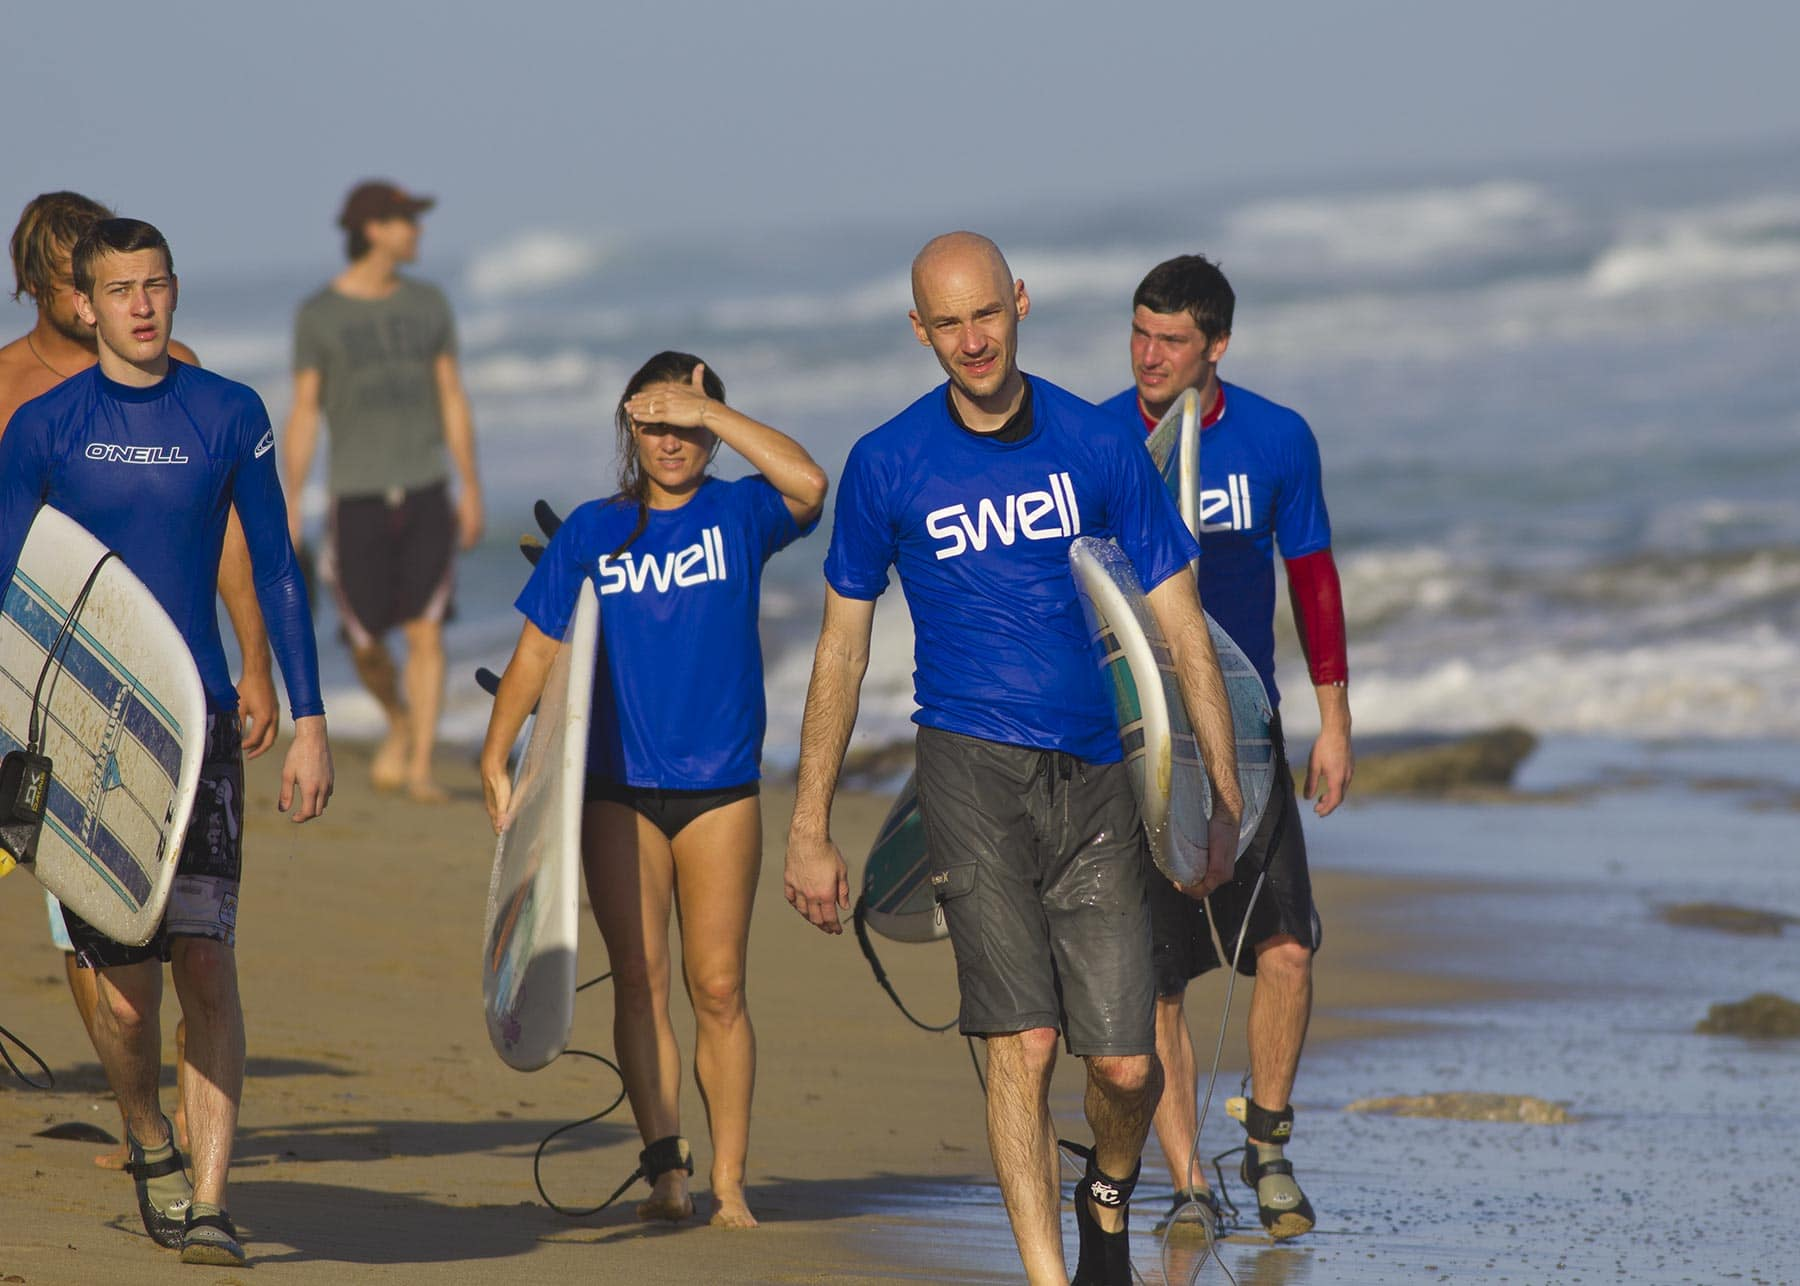 surfing IMG 0009